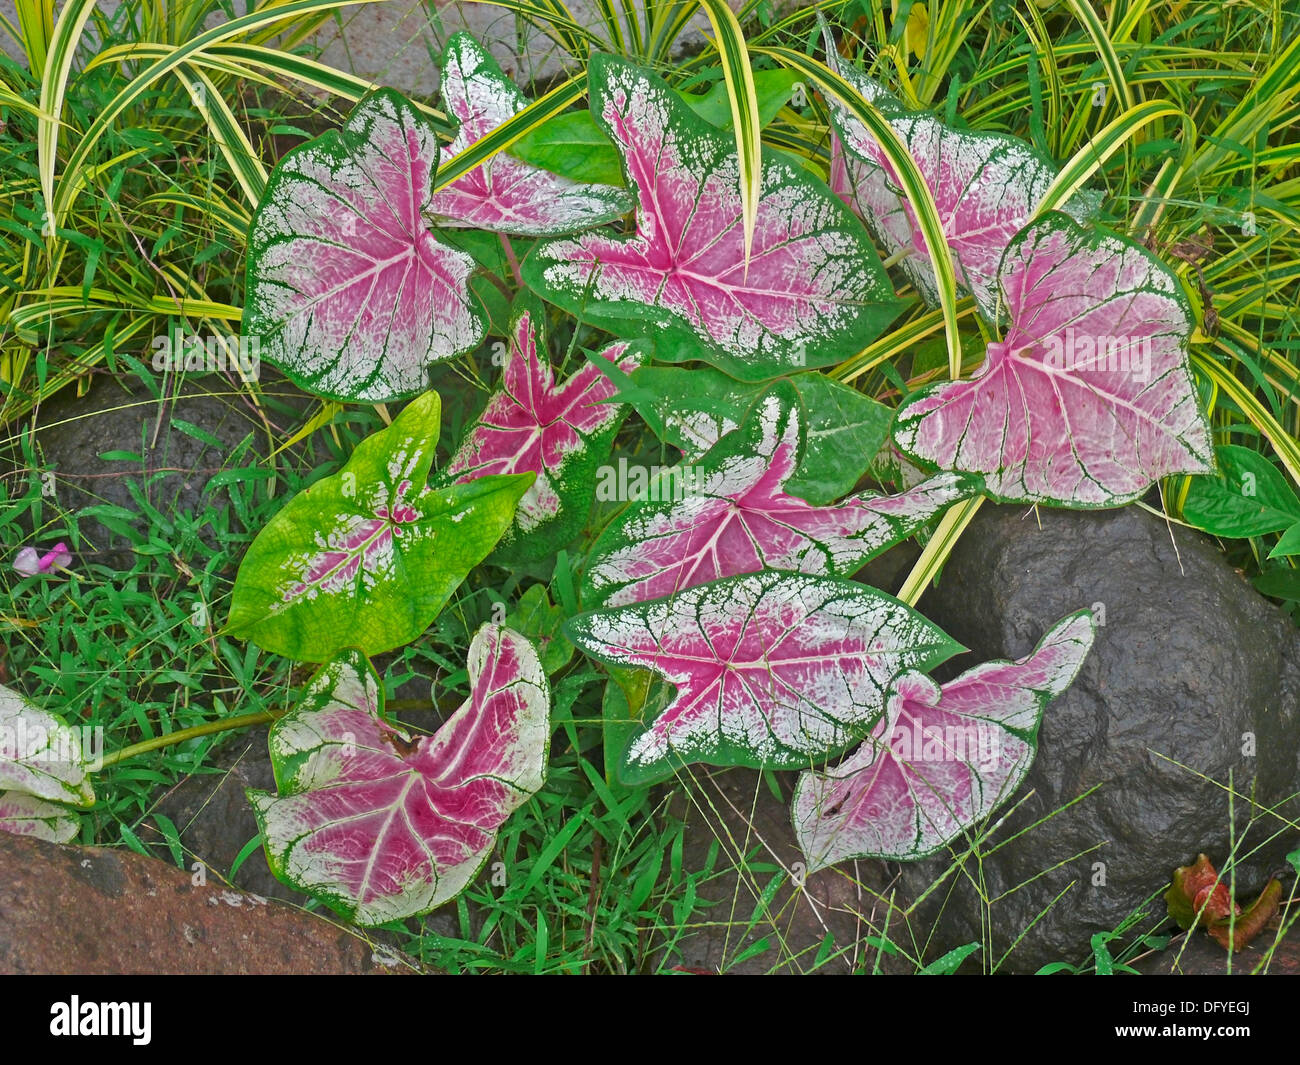 Fancy-Leaved Caladium, Caladium bicolor Photo Stock